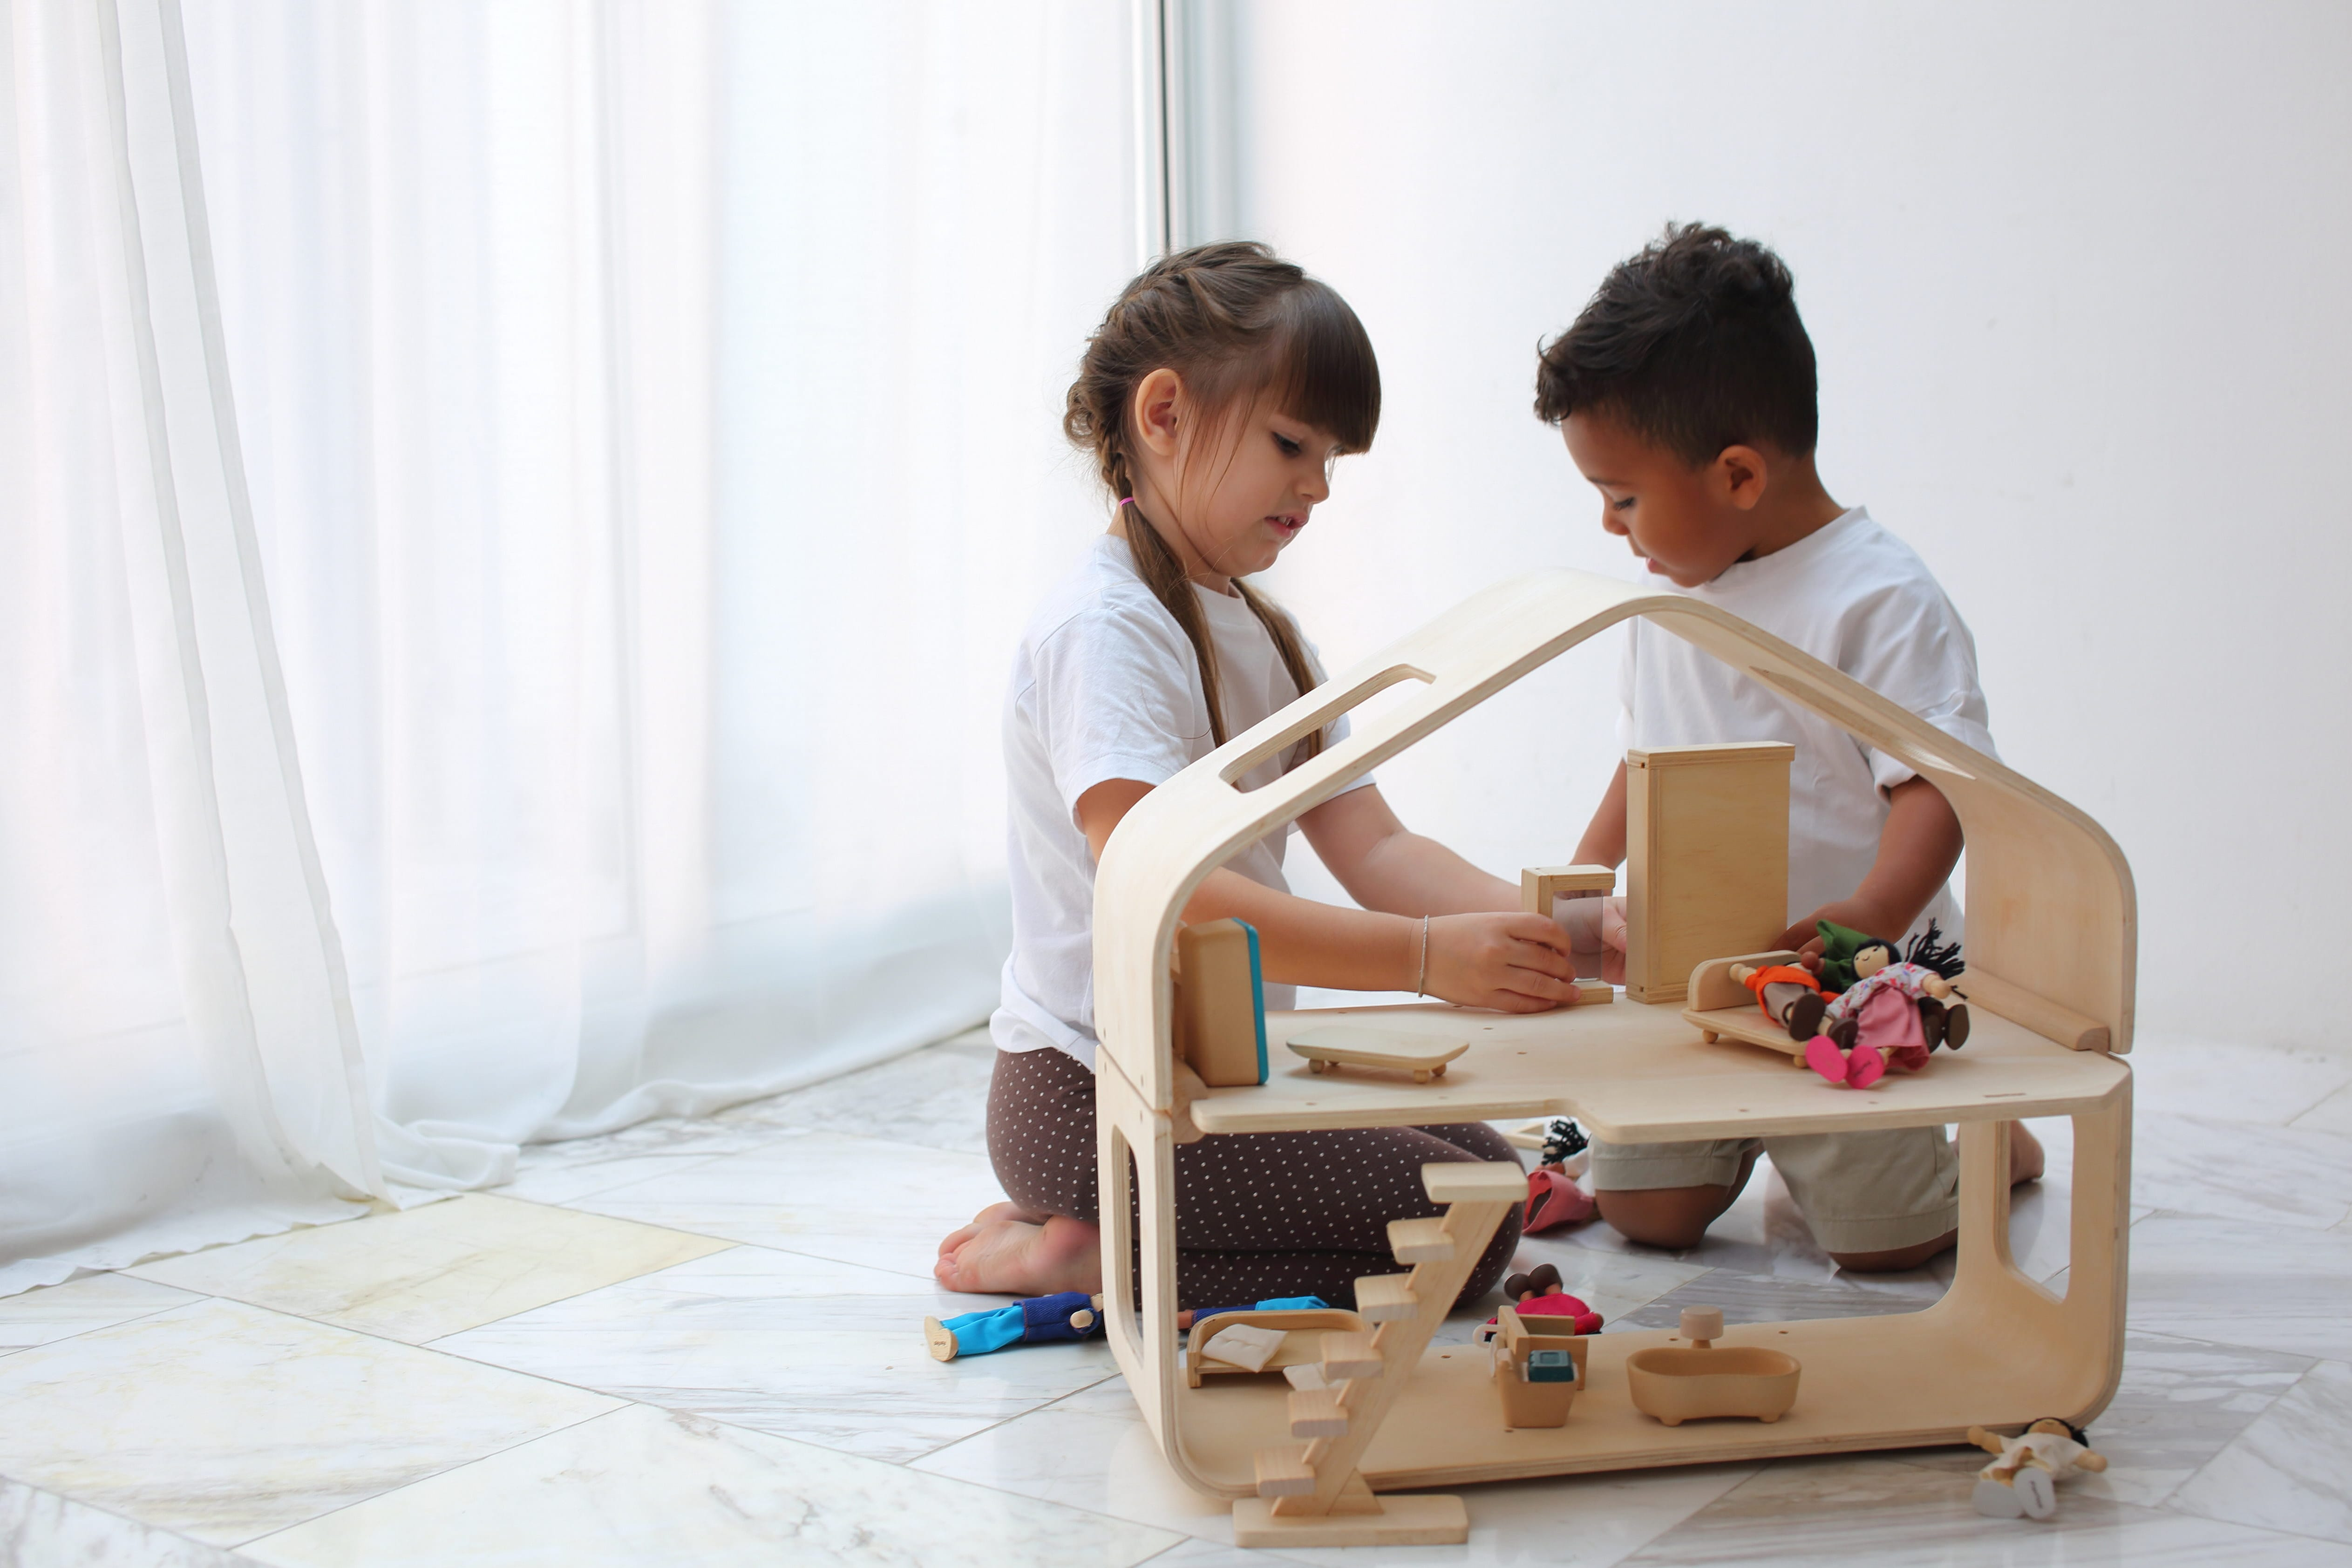 7122_PlanToys_CONTEMPORARY_DOLLHOUSE_Pretend_Play_Imagination_Coordination_Language_and_Communications_Social_Fine_Motor_3yrs_Wooden_toys_Education_toys_Safety_Toys_Non-toxic_0.jpg